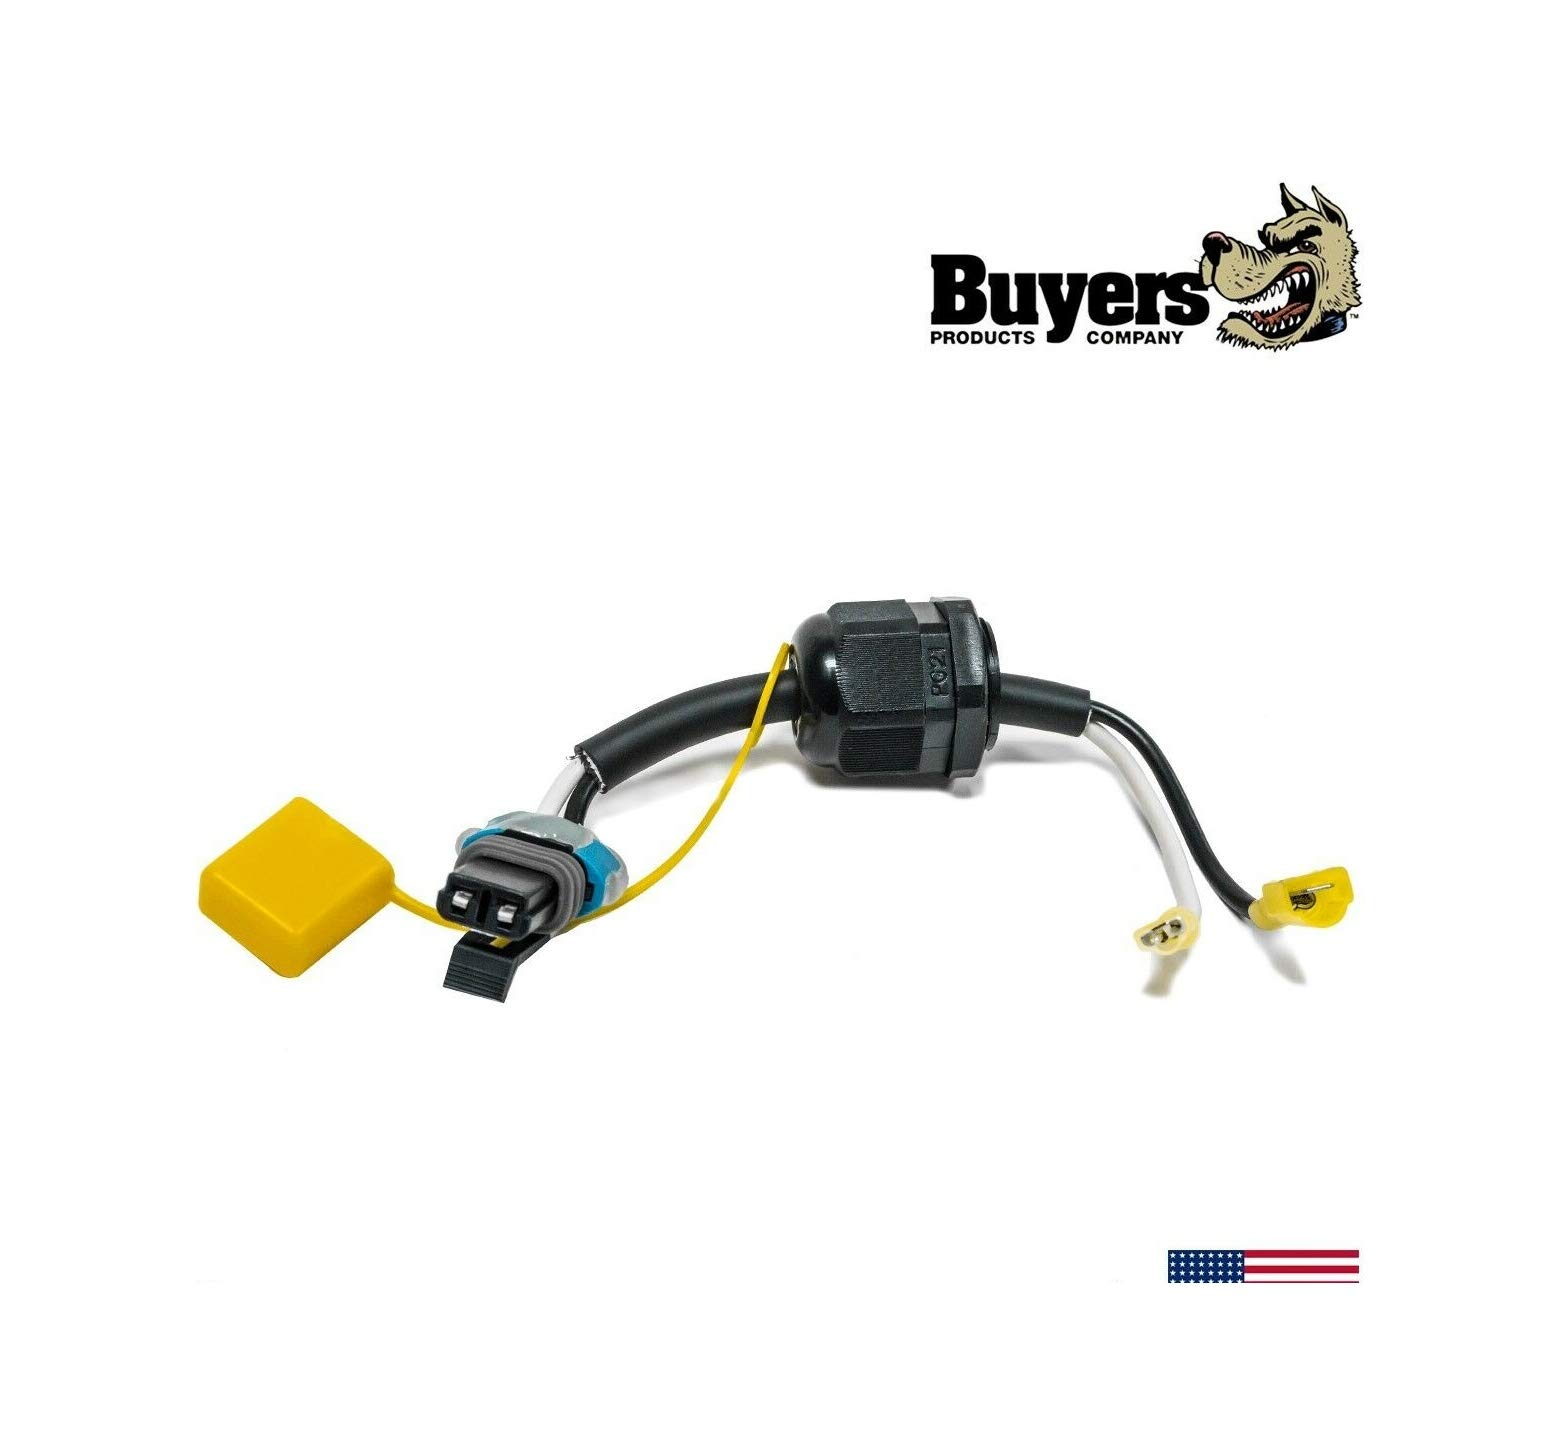 Buyers Saltdogg Wire Harness Chute Spinner Spreader Salter 3006753 Shpe Spreader by LMParts